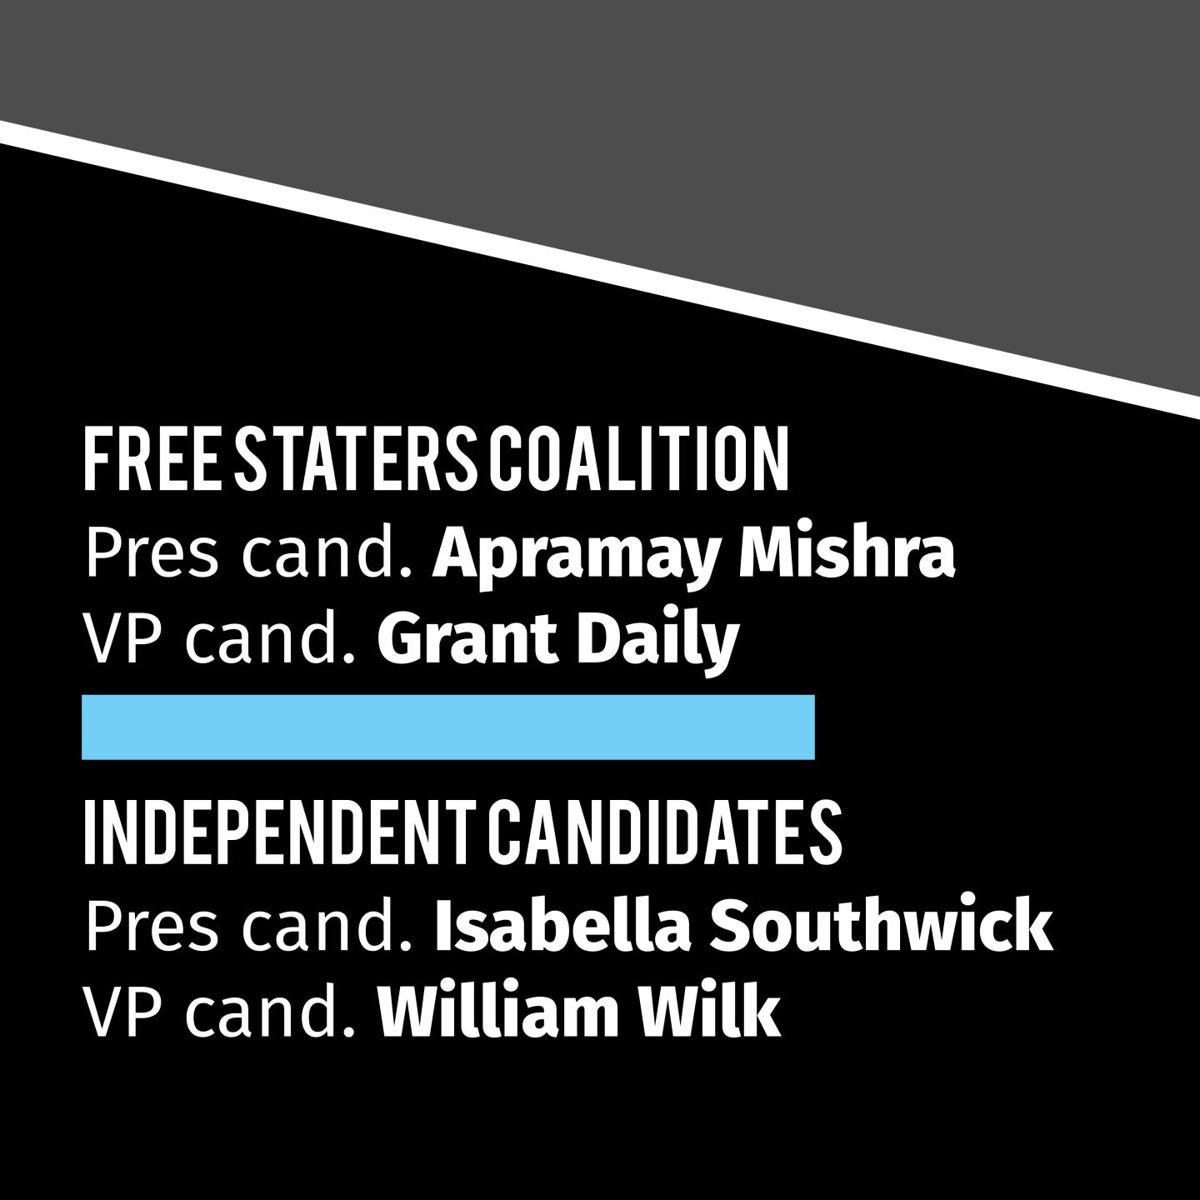 Apramay Mishra and Grant Daily are running with Free Staters. Isabella Southwick and William Wilk are independents